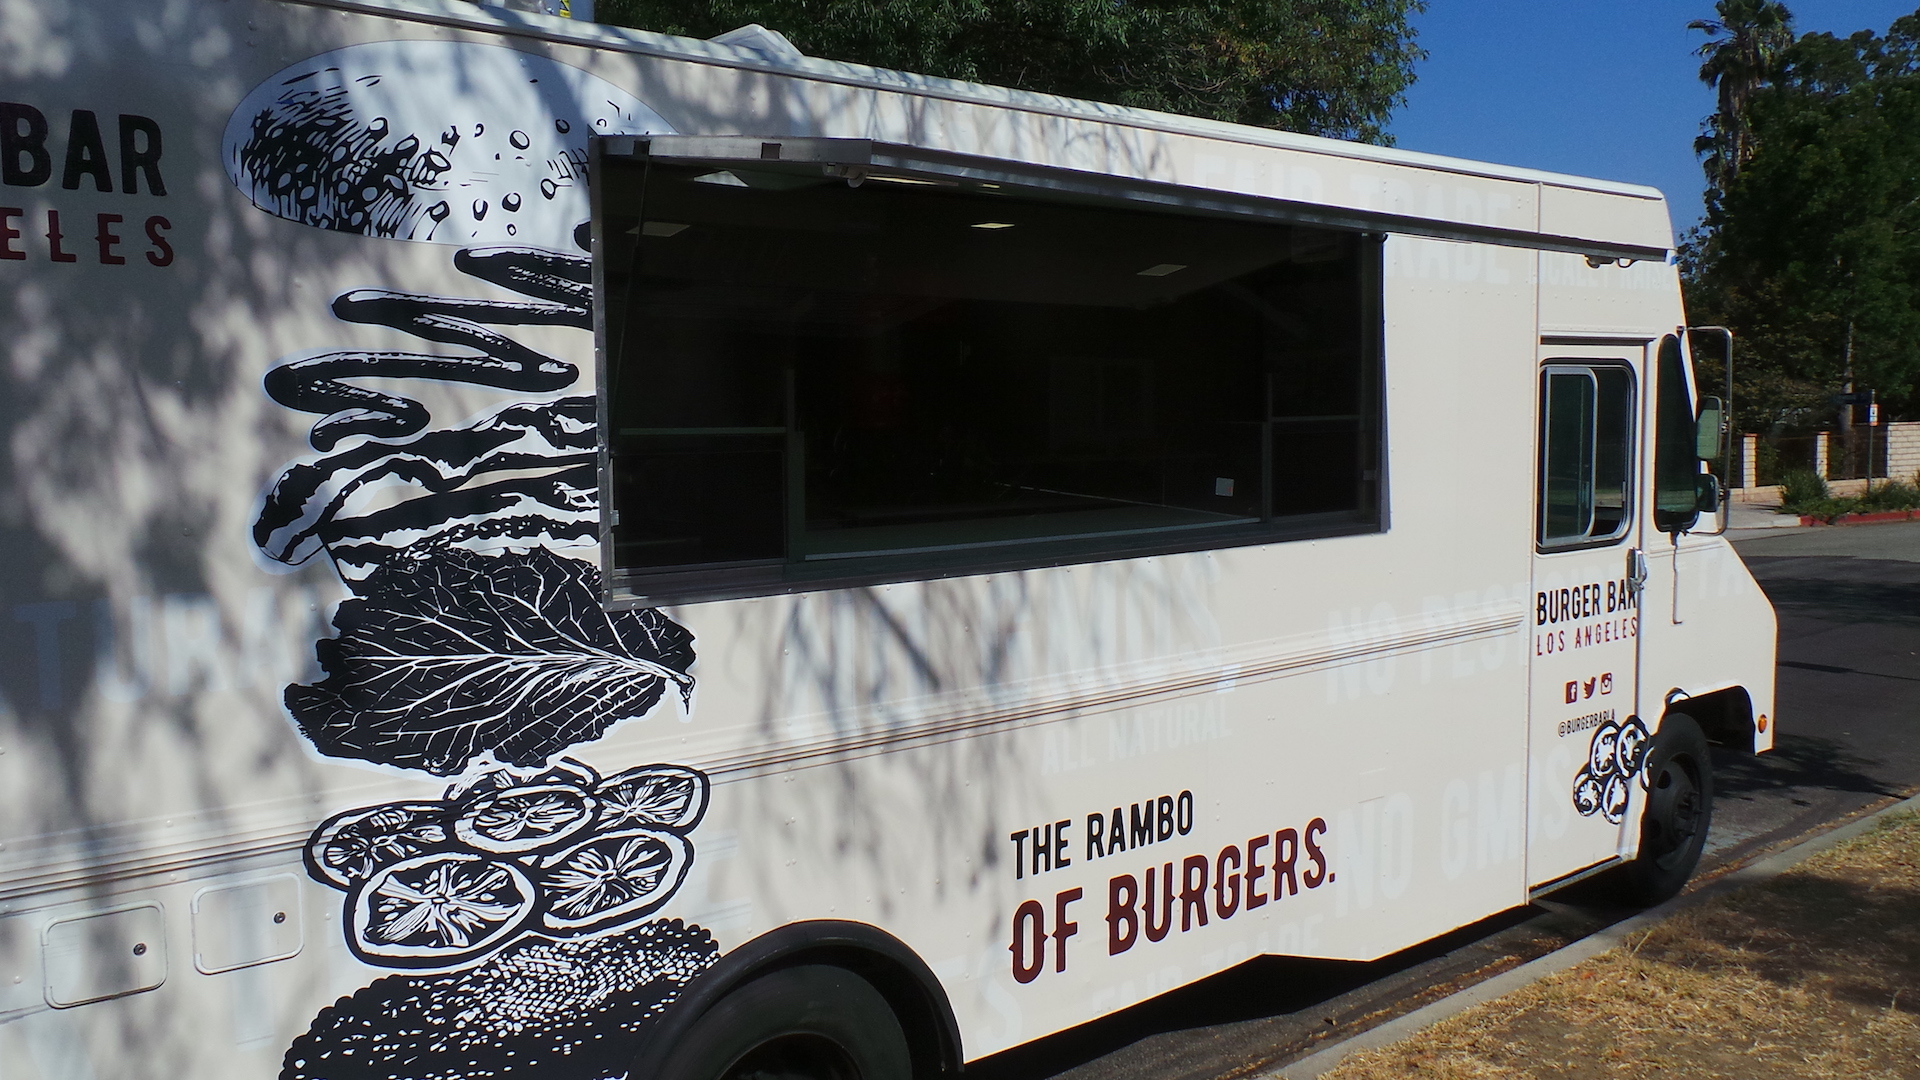 Burger bar la stainless kings for Food truck bar